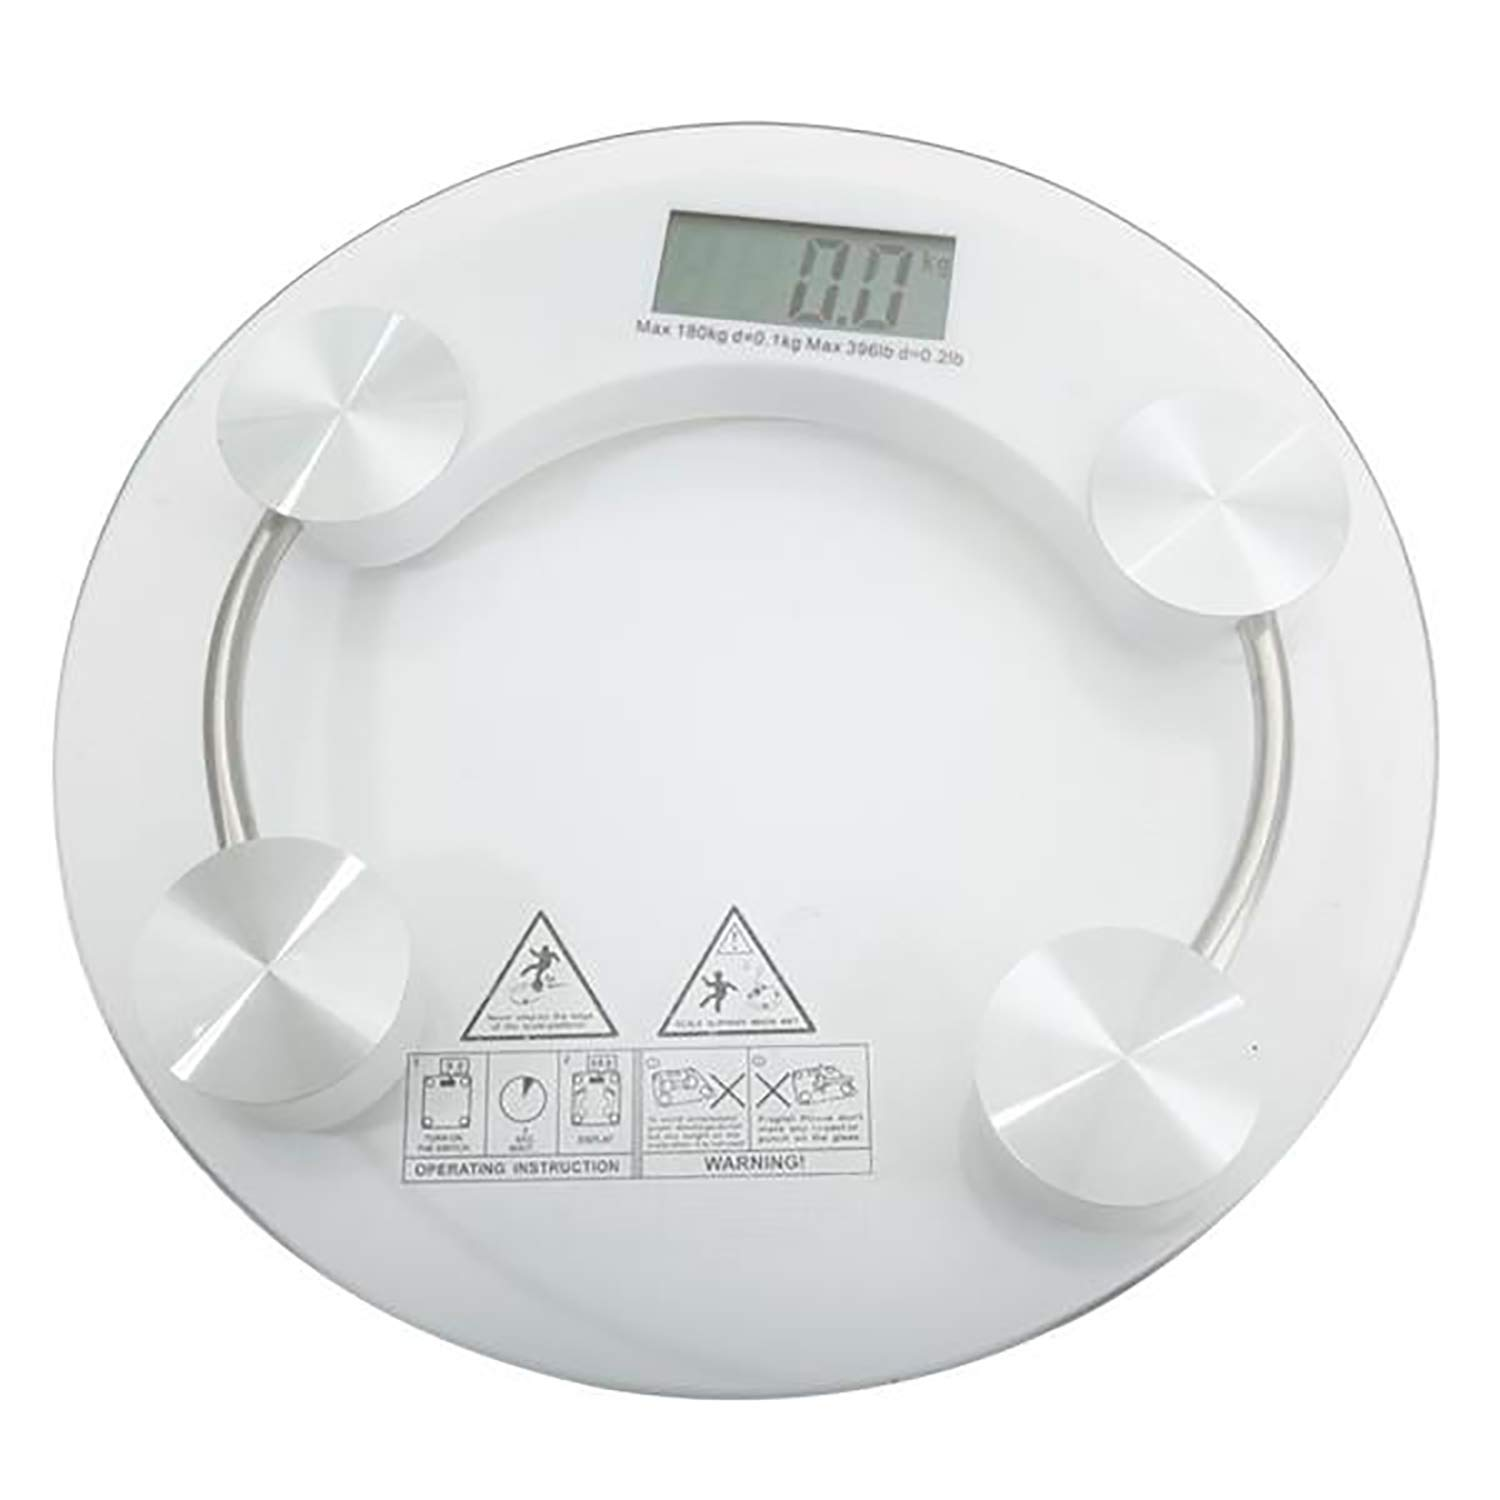 Sorlook Digital Body Weight Scale, Bathroom Scale with 4-Digits LCD Display, High Precision Measurements, 400 Pounds Max, High Strength Toughened Glass by Sorlook